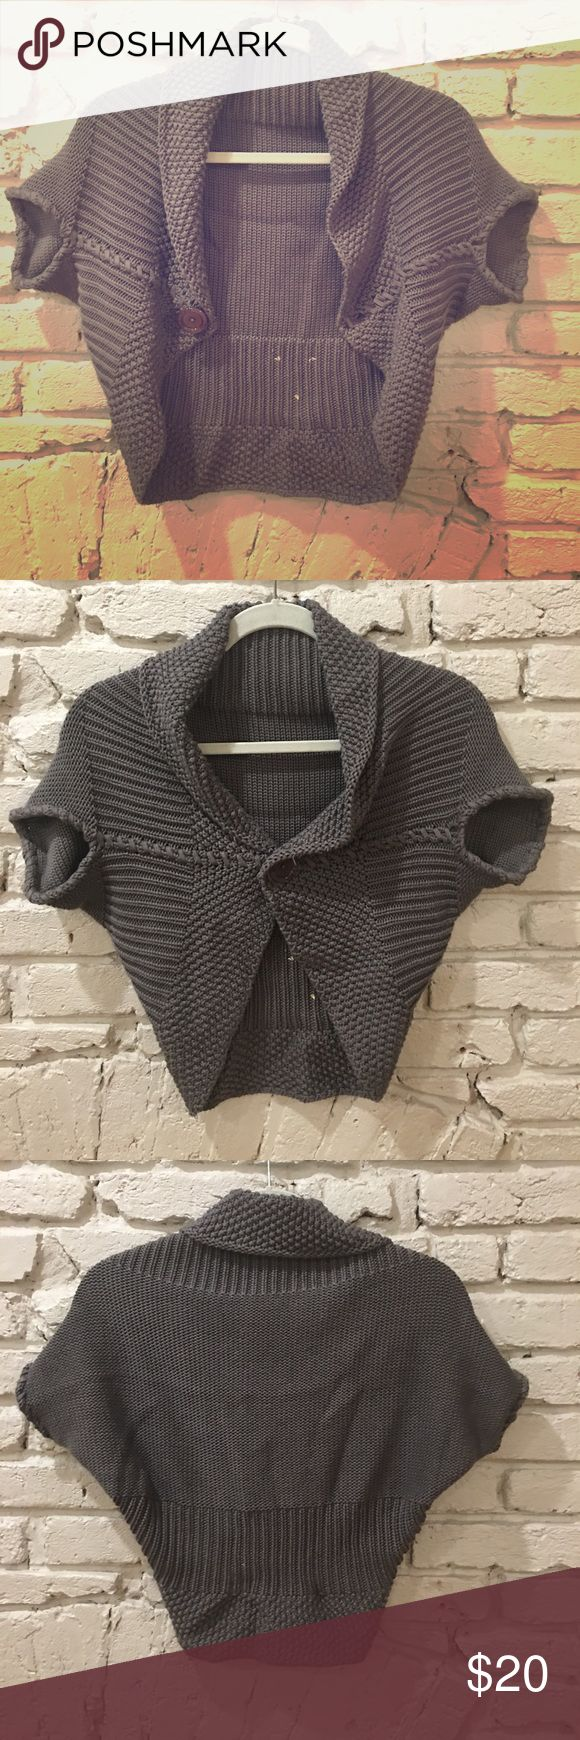 Italian knit shrug genuine made in impeccable Italy dark grey shrug.  Feels like a thick cotton. Comfy.  See pic for what looks like little bleach drops on interior not exterior. Sweaters Shrugs & Ponchos